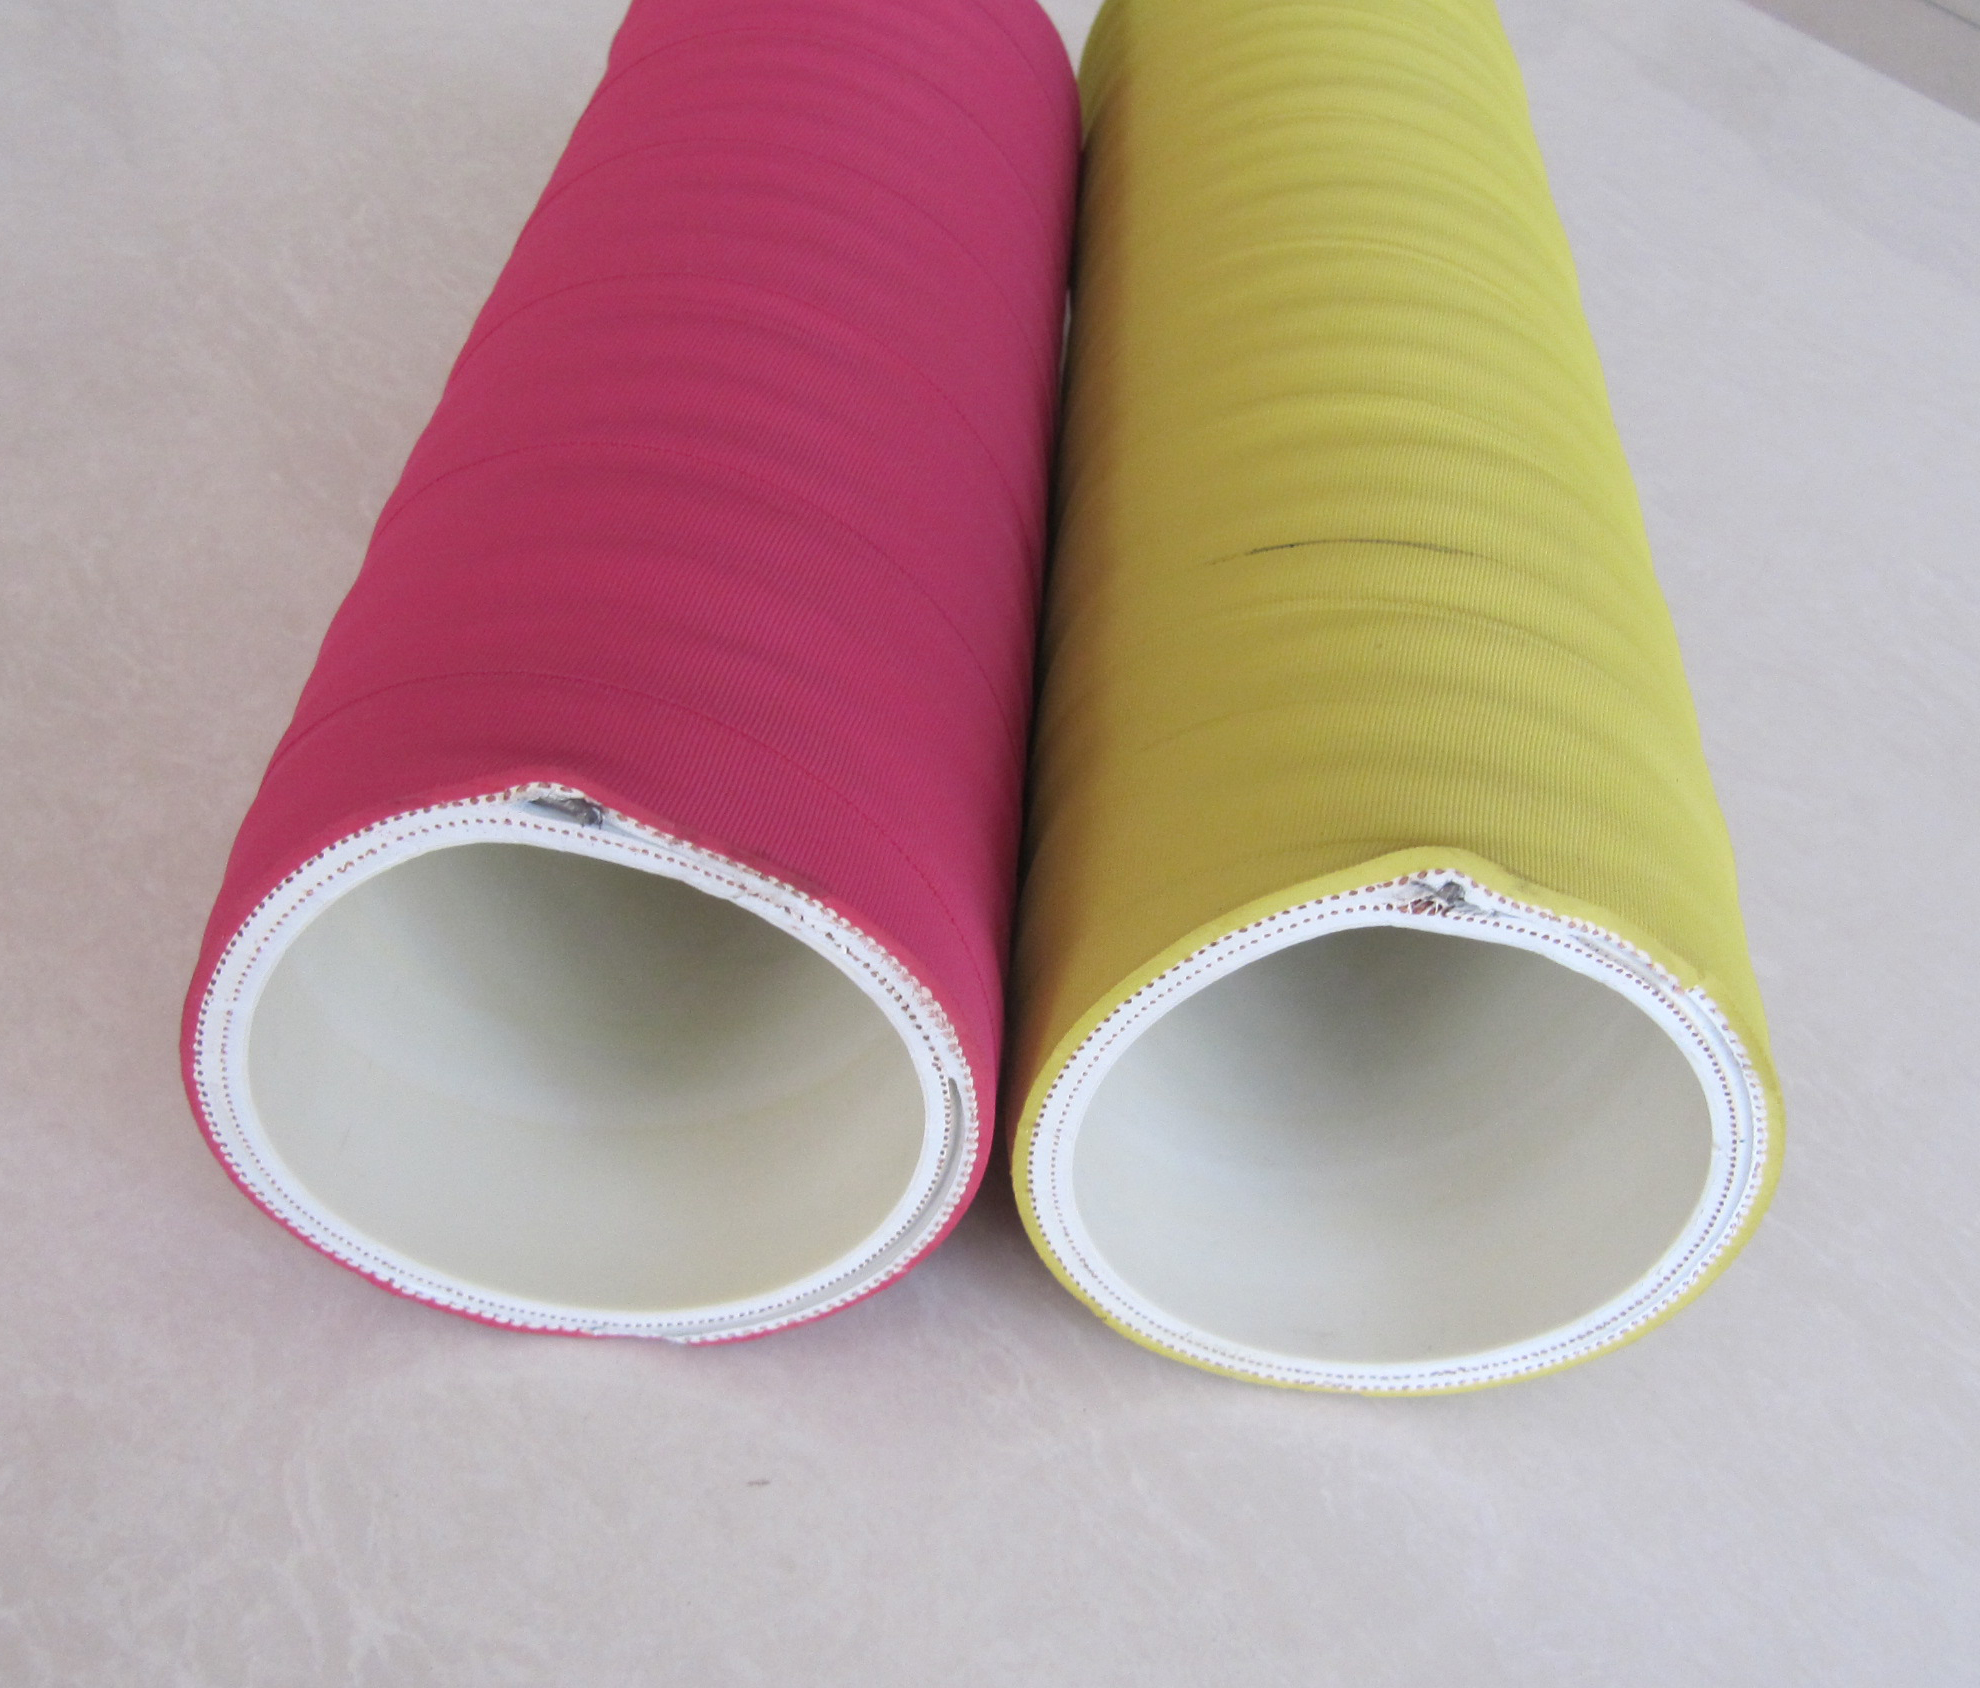 Uhmwpe Chemical Discharge Hose 150psi Everflex